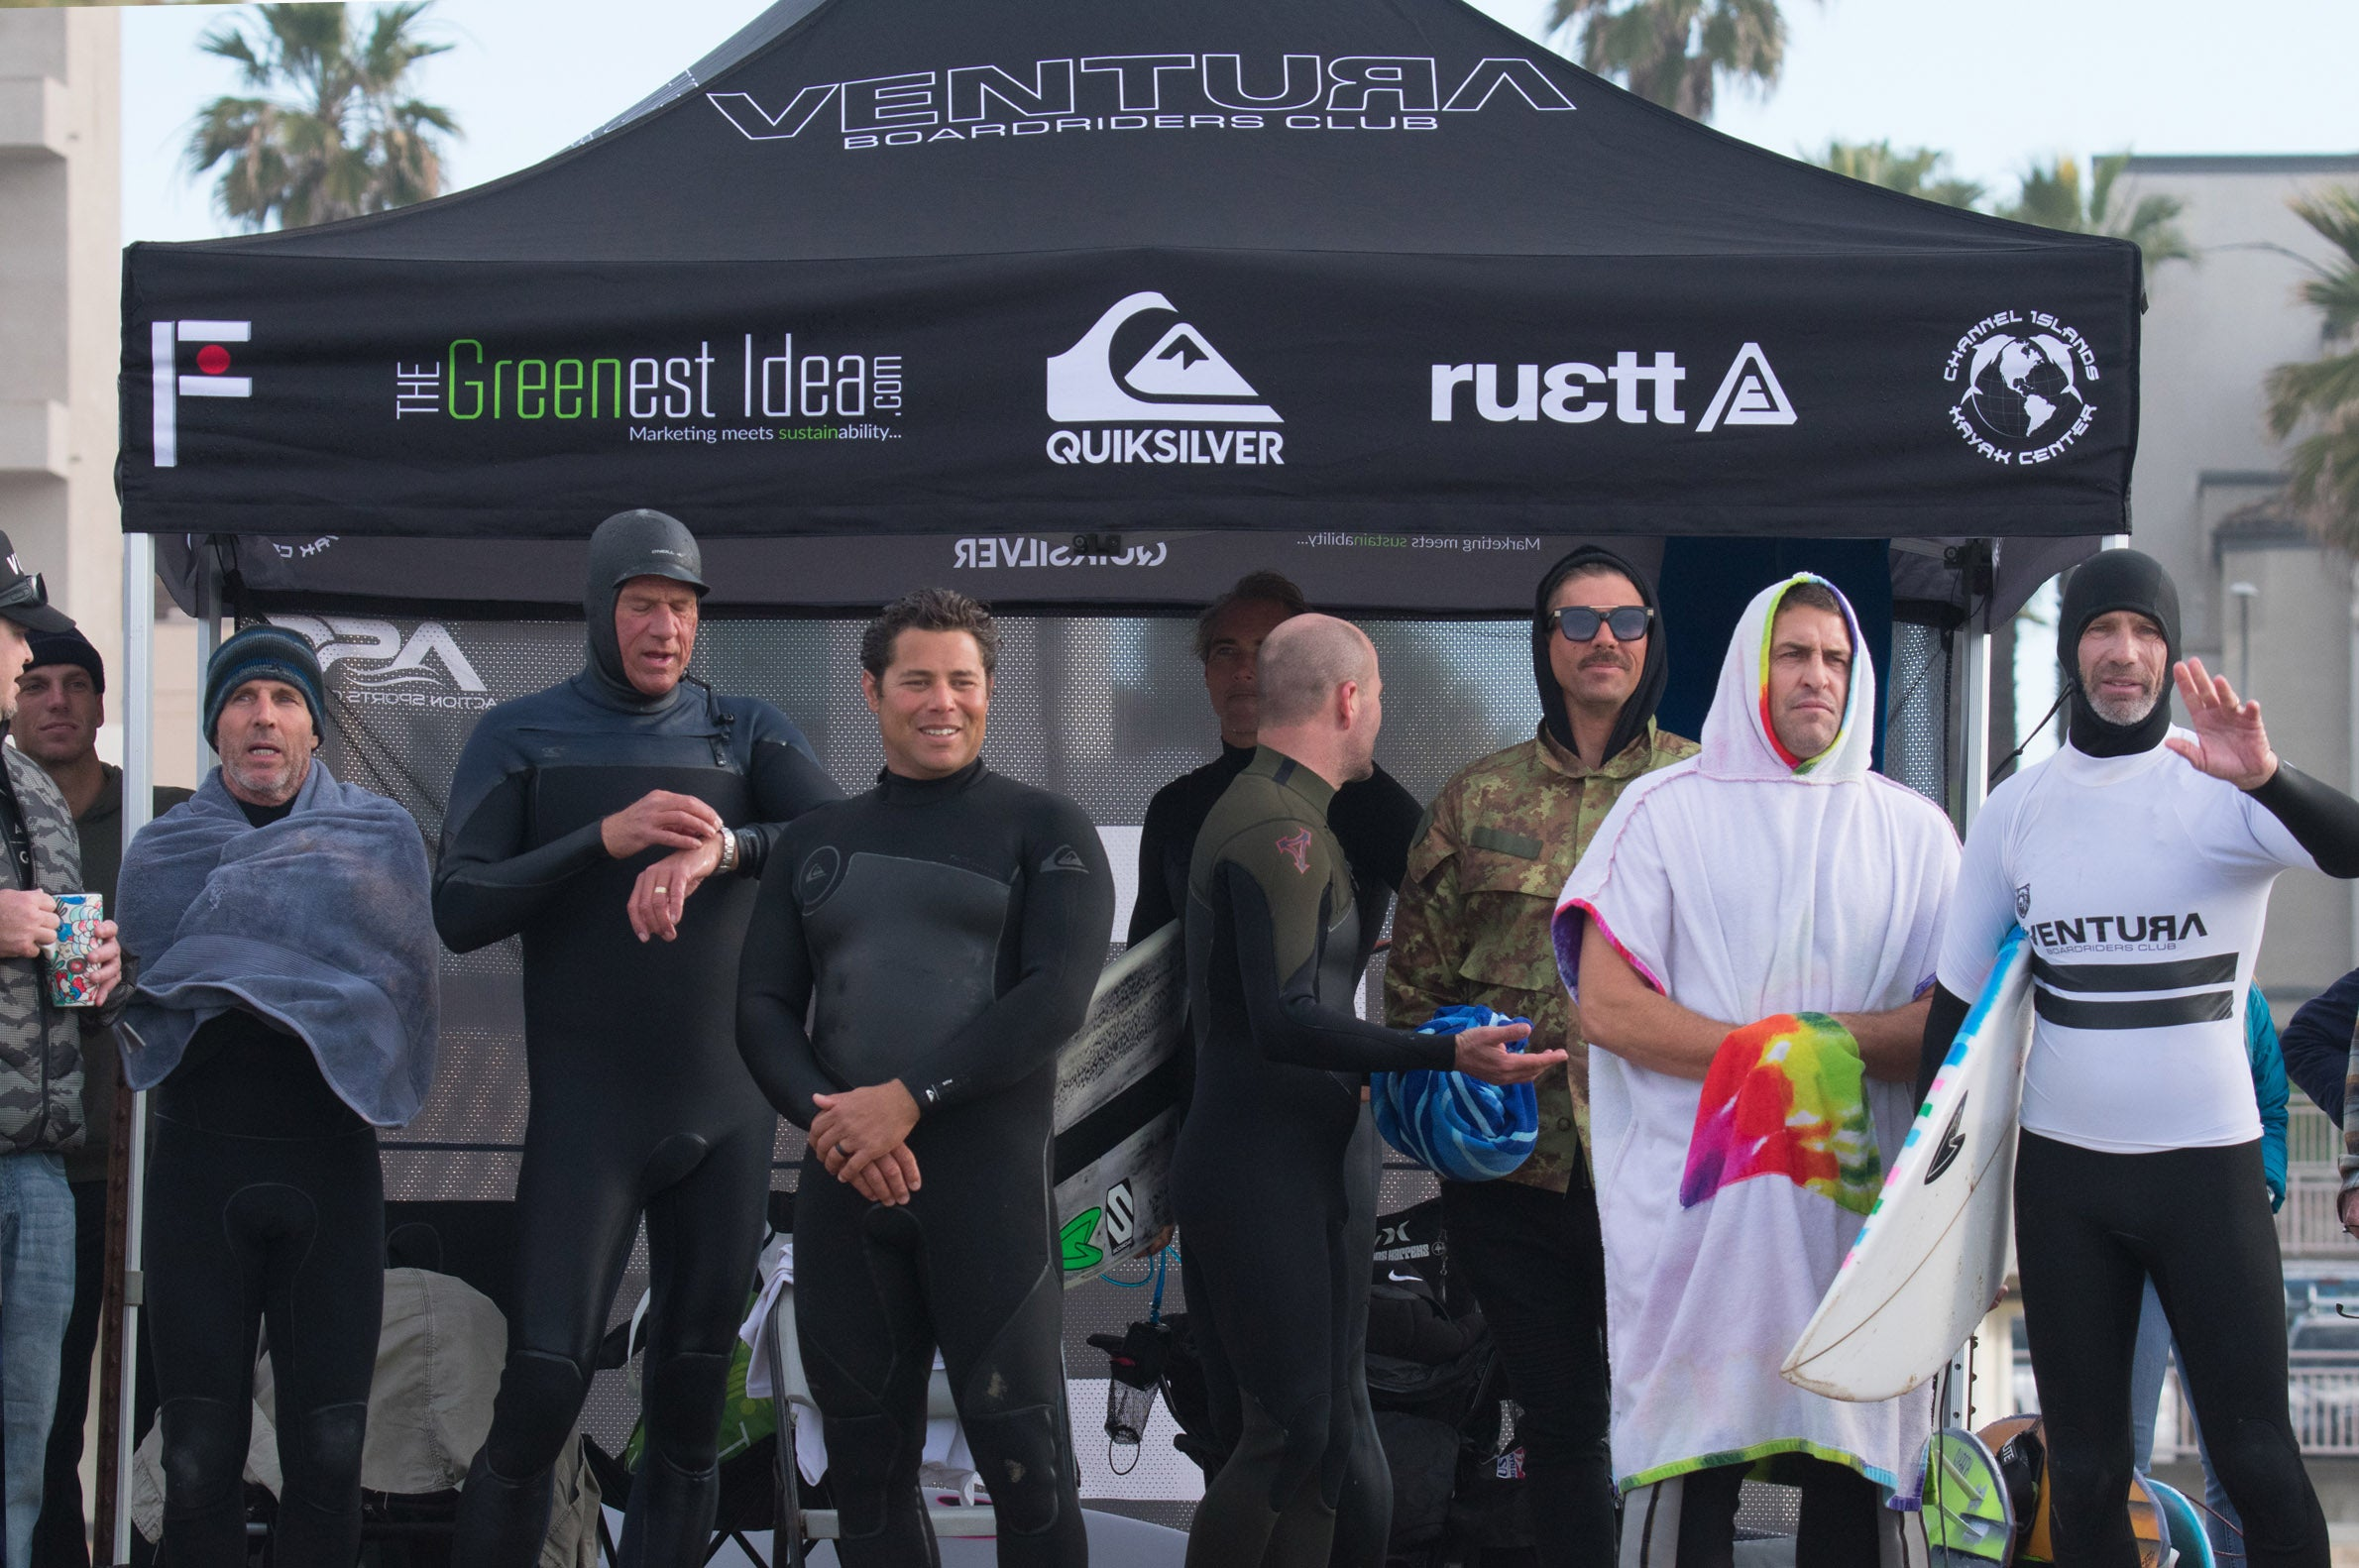 ventura boardriders club event 1